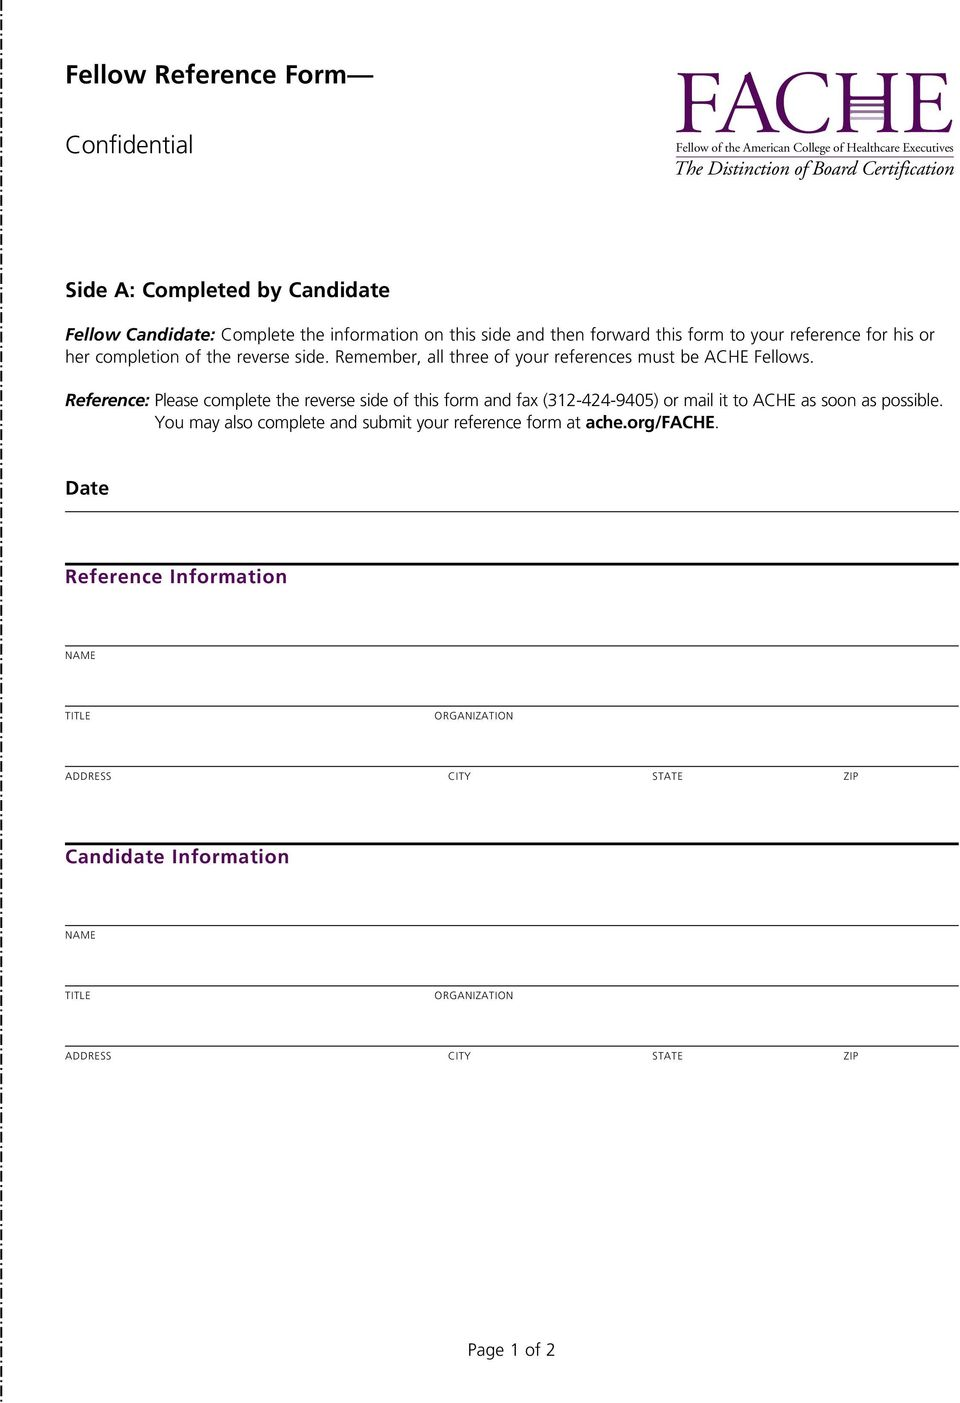 College of Healthcare Executives Reference: Please complete the reverse side of this form and fax (312-424-9405) or mail it to ACHE as soon as possible.